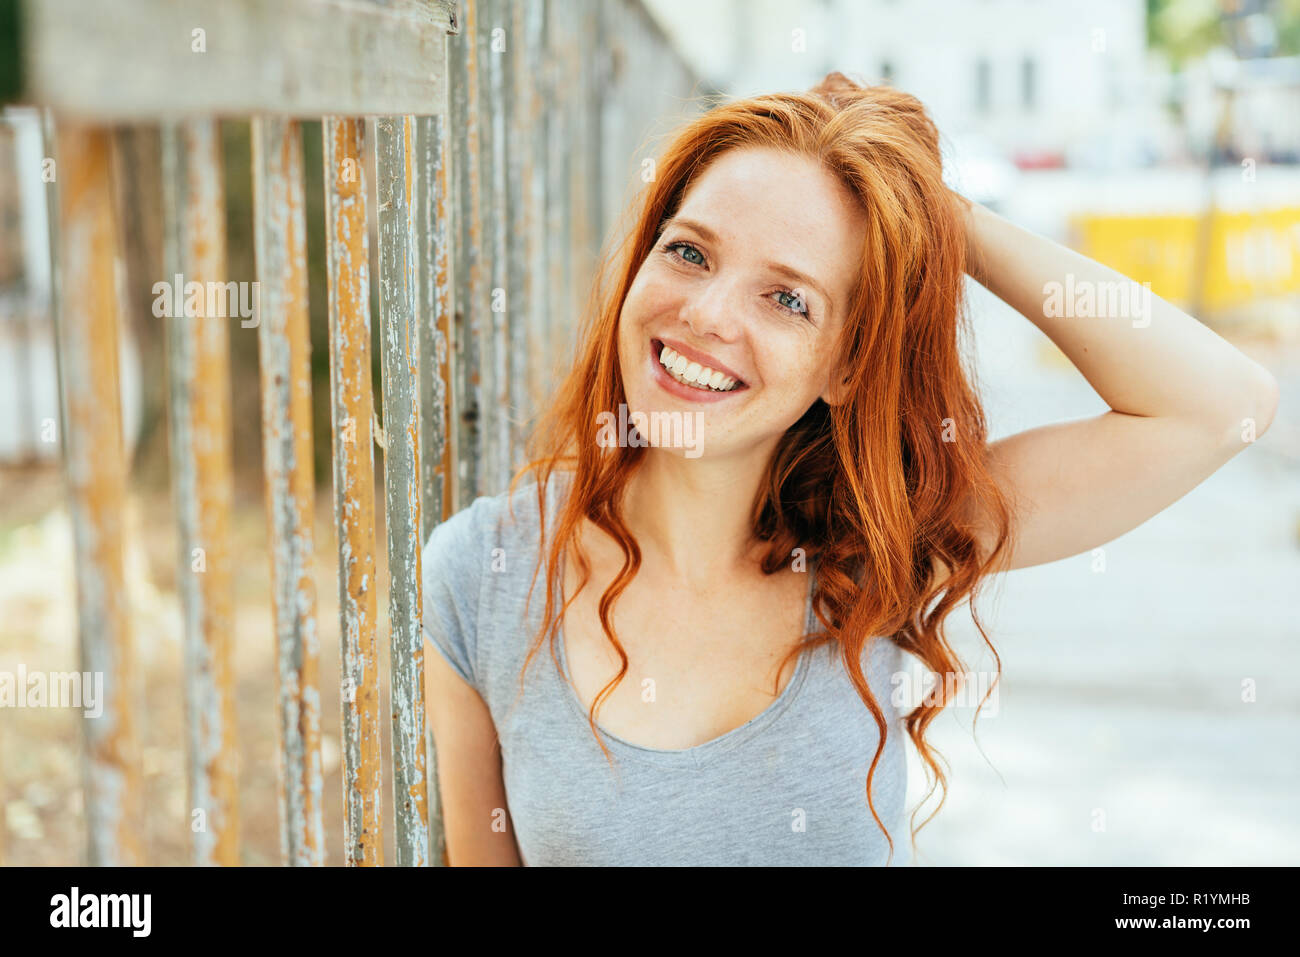 attractive friendly woman with tousled long red hair standing against a metal railing in a high key outdoor street - Stock Image